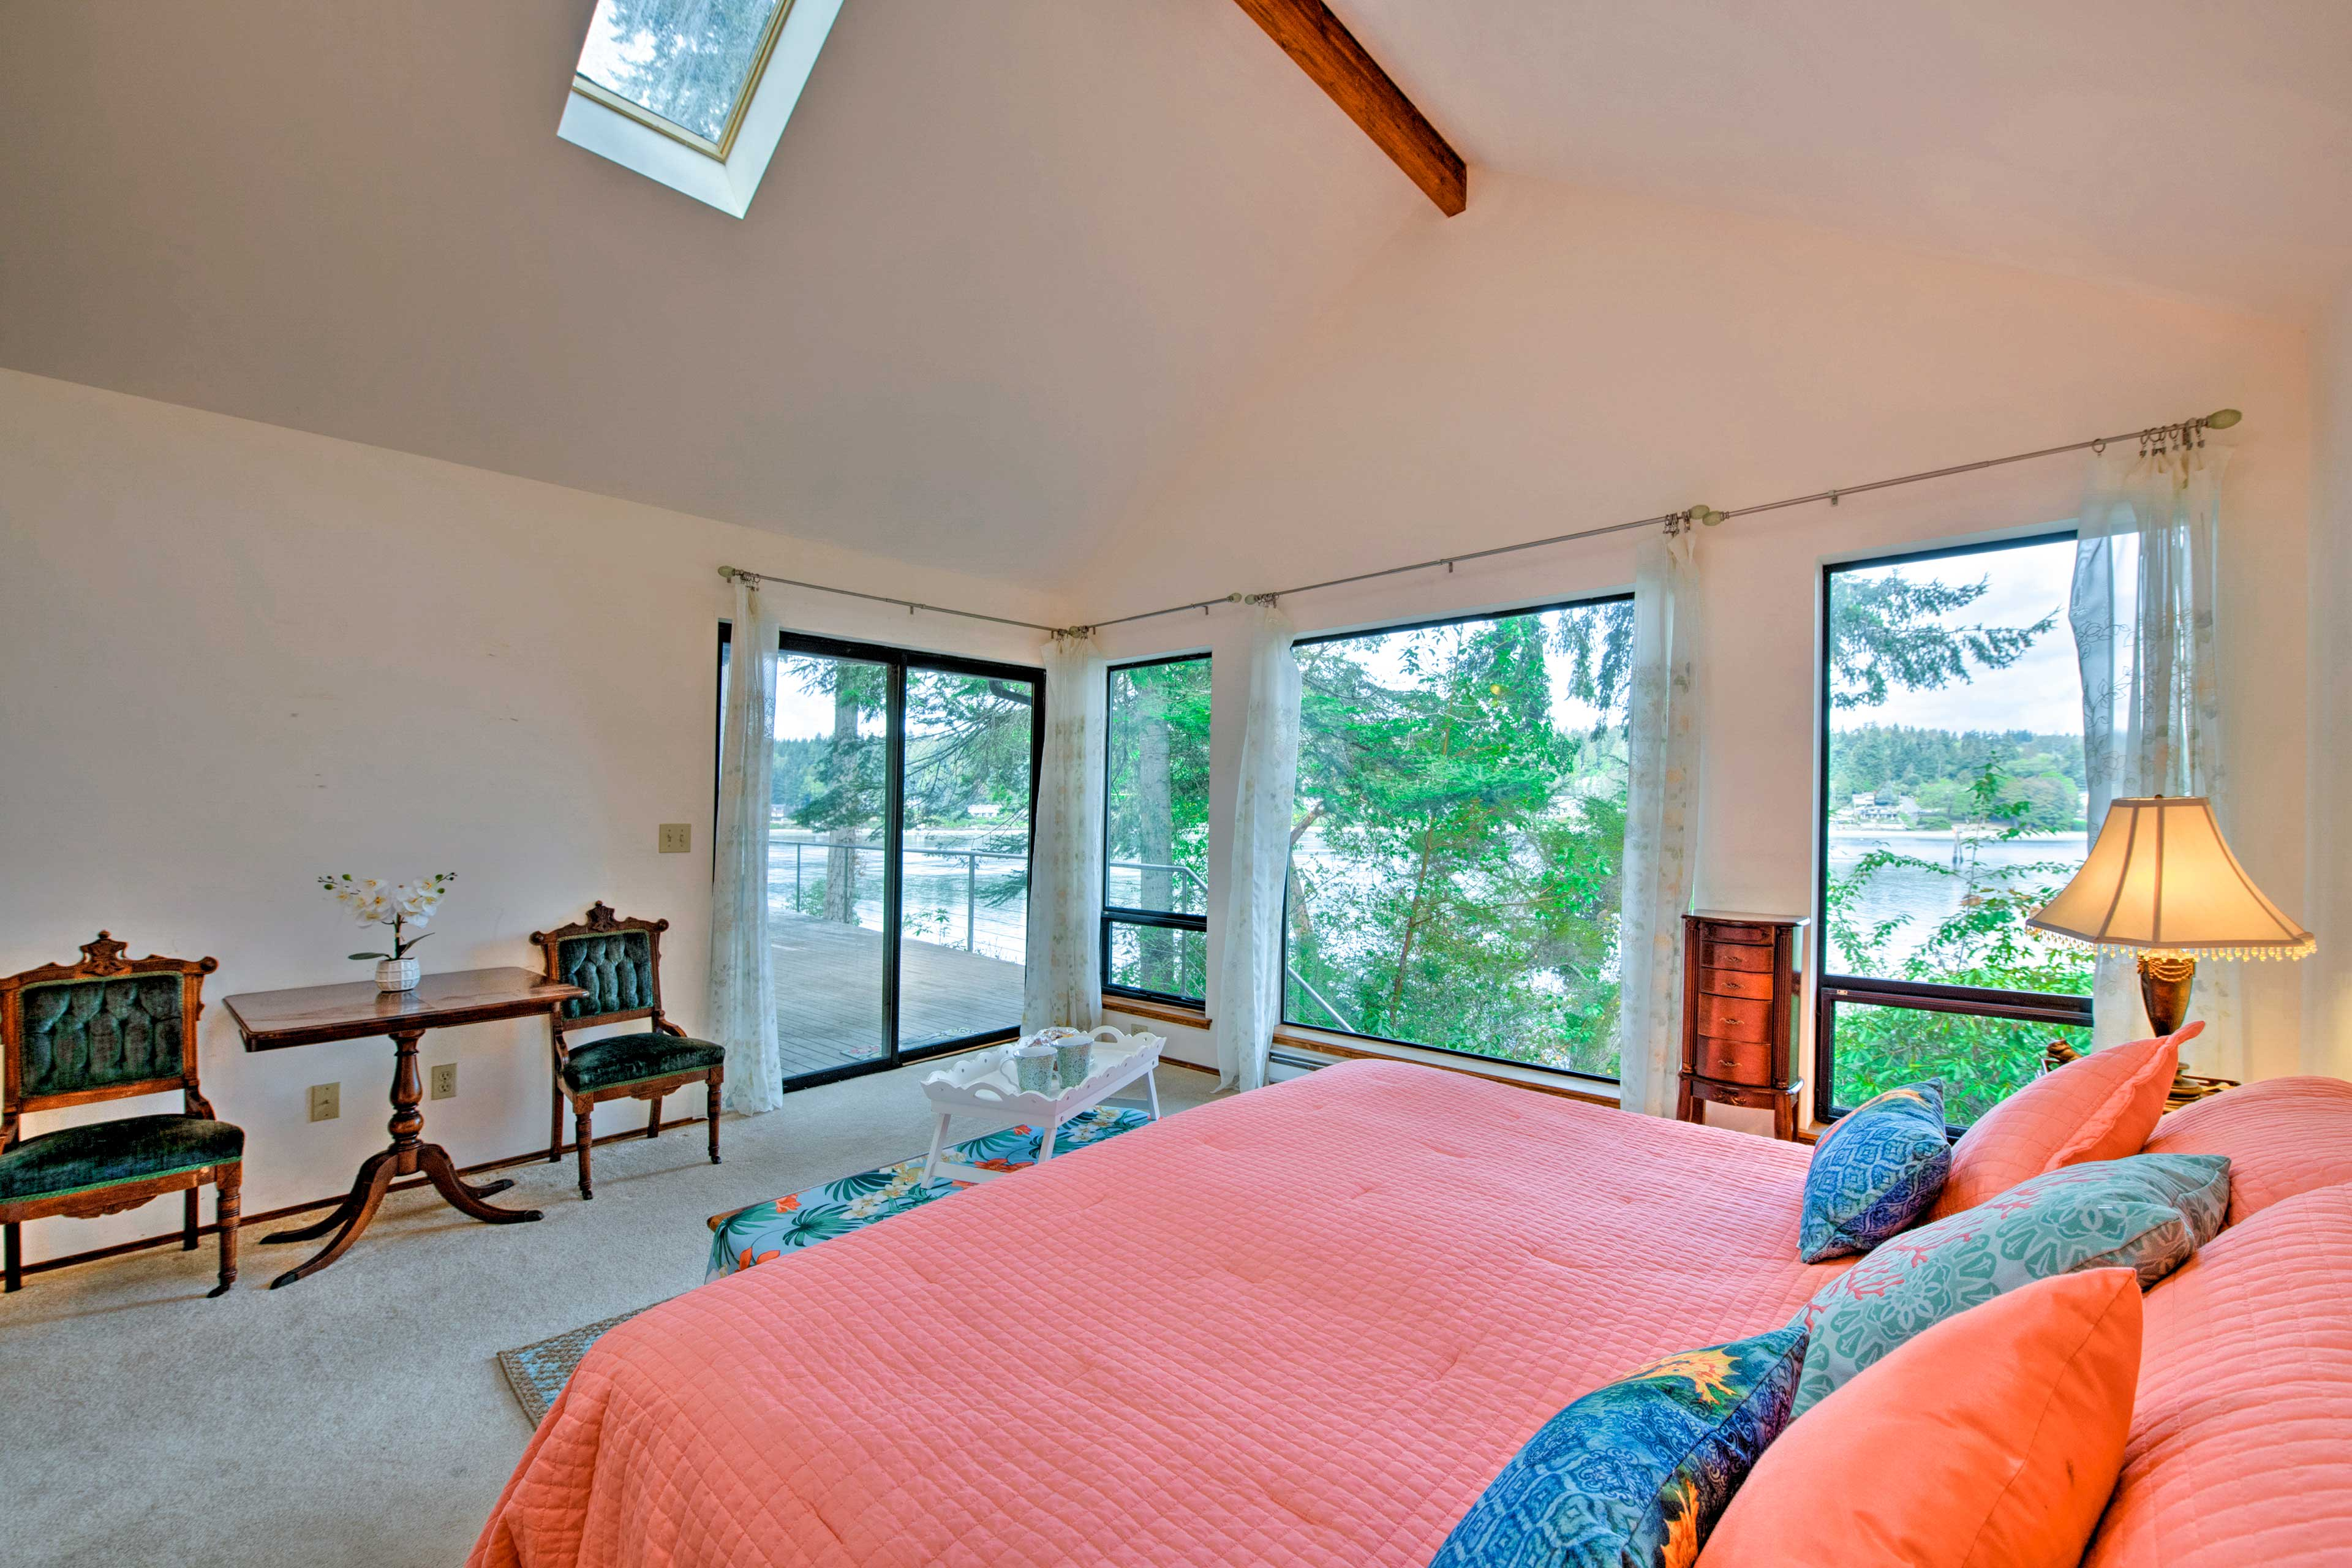 Master Bedroom | Linens Provided | Access to Wraparound Deck